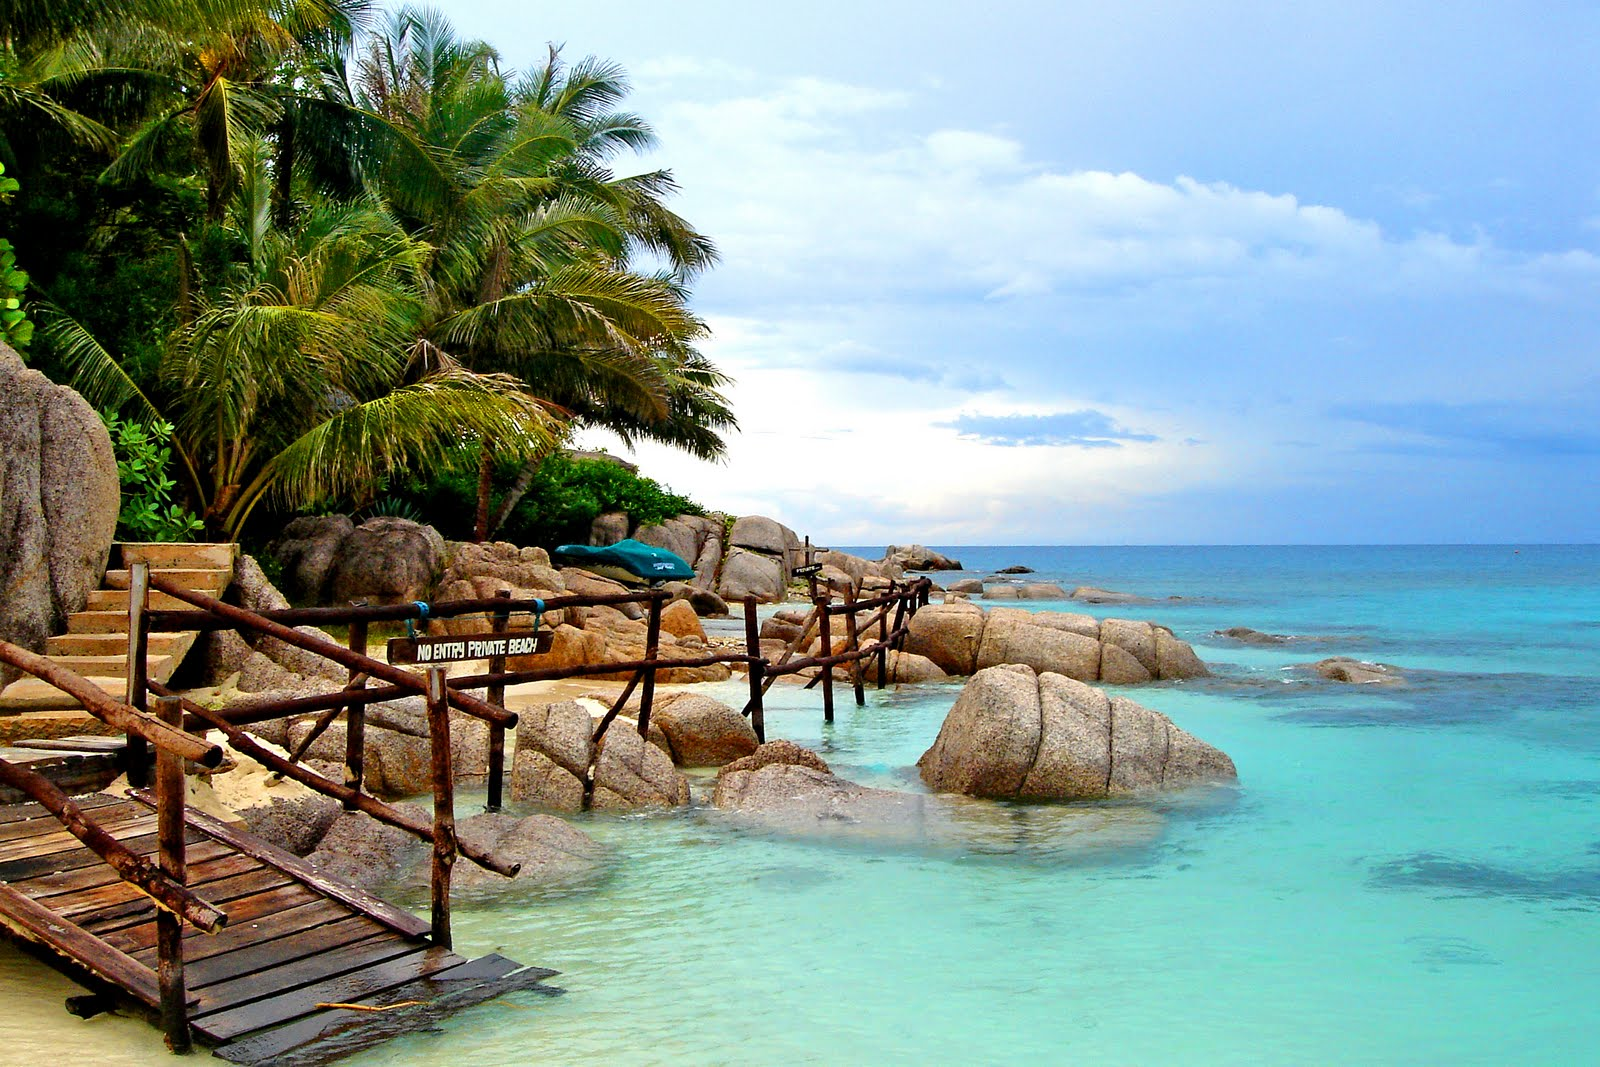 Koh tao thailand travel info and travel guide tourist for Hotels koh tao